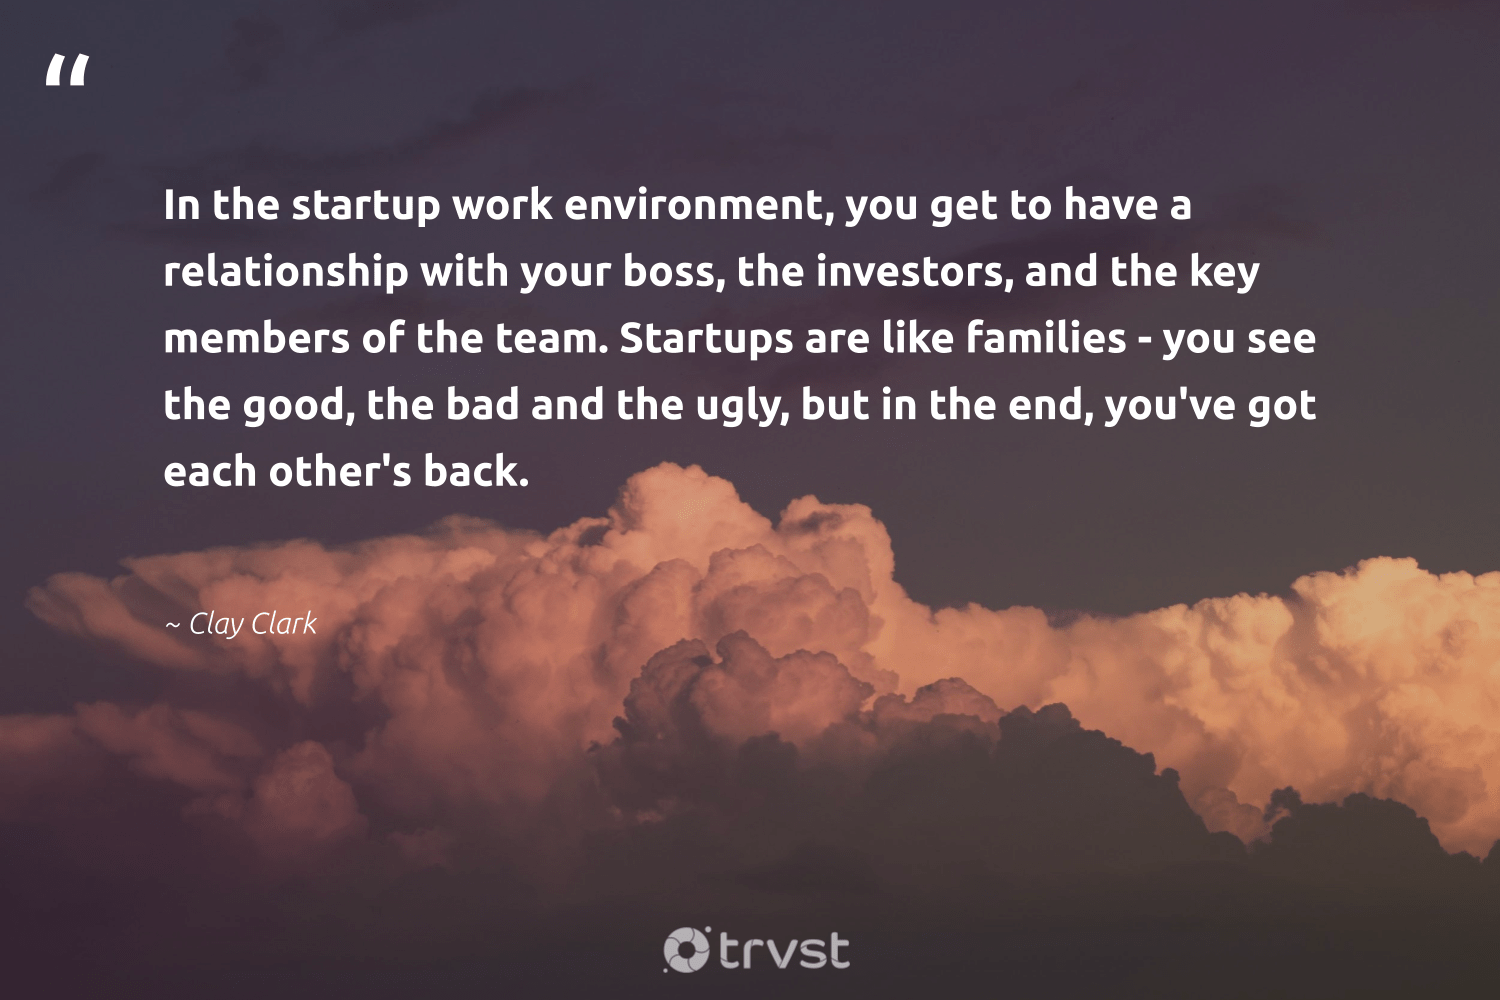 """""""In the startup work environment, you get to have a relationship with your boss, the investors, and the key members of the team. Startups are like families - you see the good, the bad and the ugly, but in the end, you've got each other's back.""""  - Clay Clark #trvst #quotes #environment #families #startup #earth #nevergiveup #sustainability #socialchange #mothernature #softskills #getoutside"""